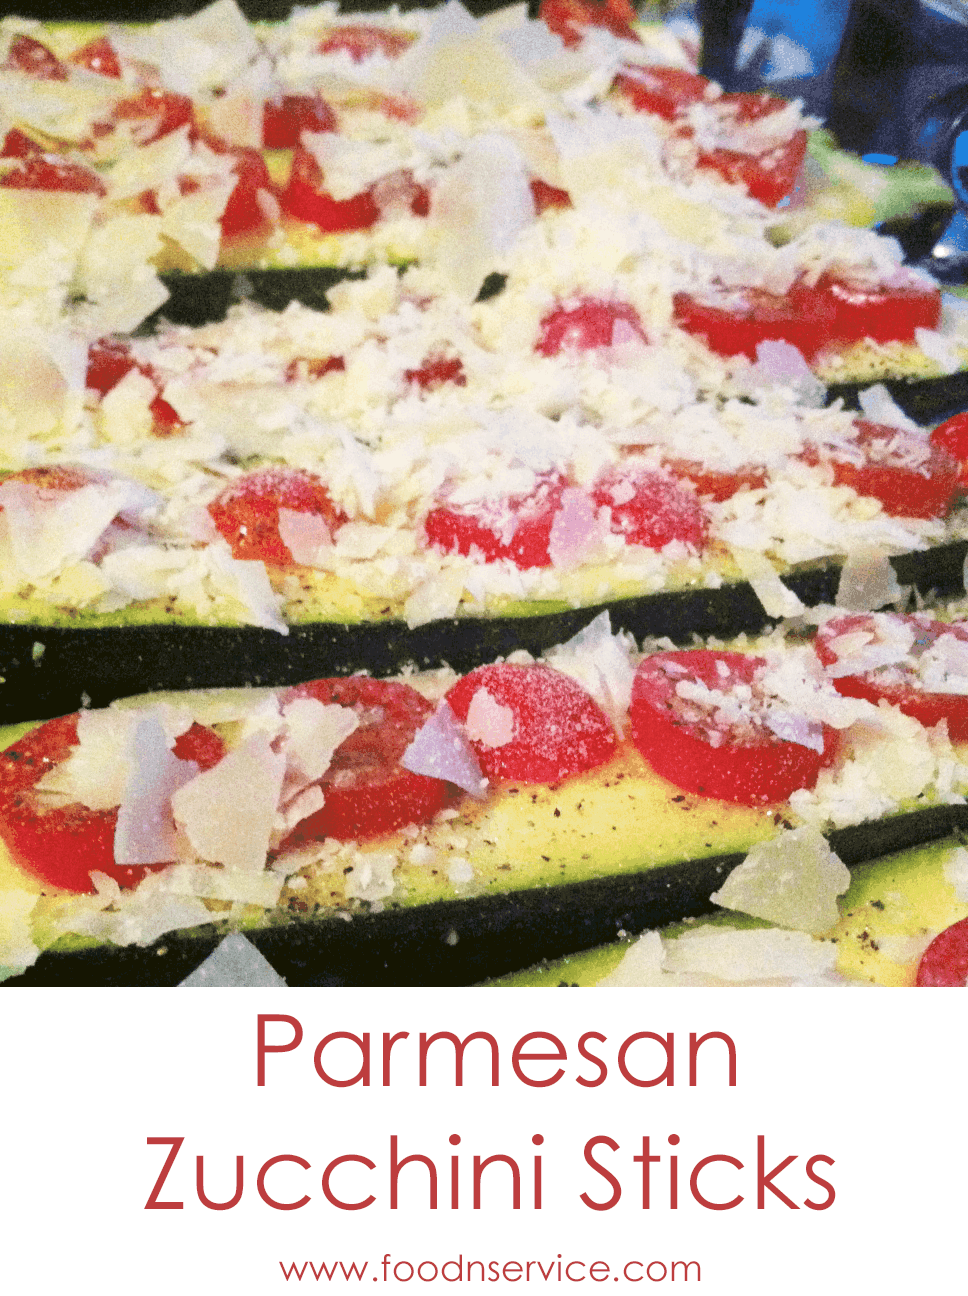 Parmesan Zucchini Sticks Recipes